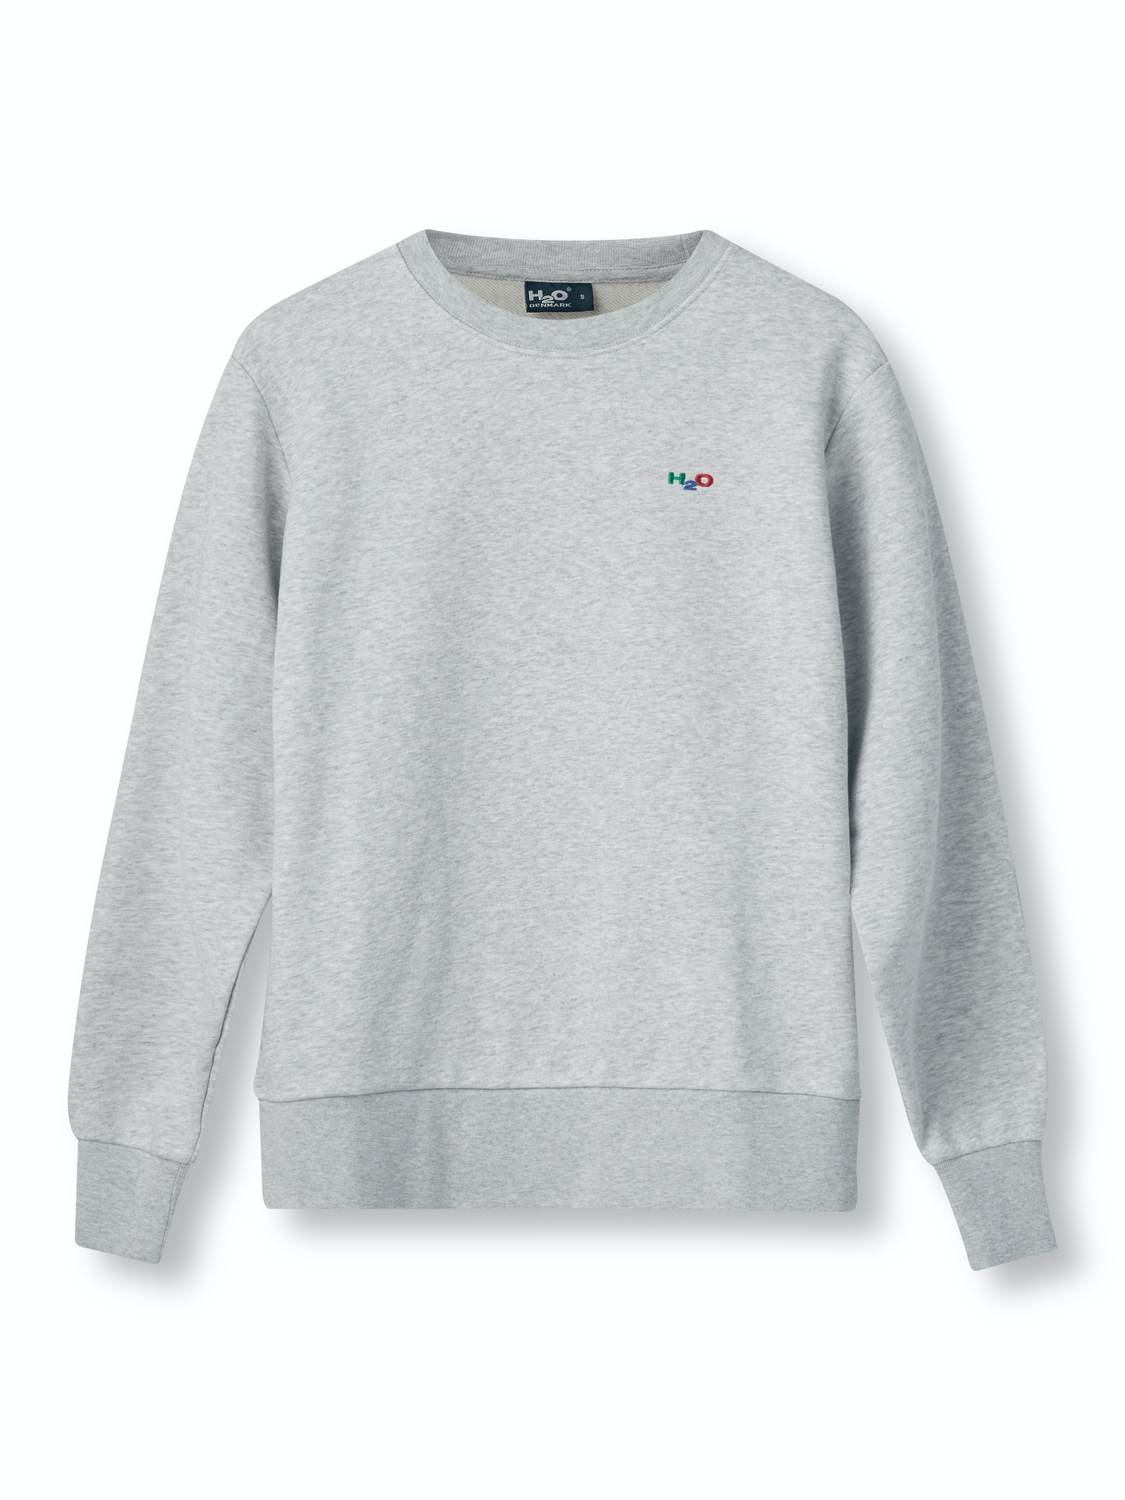 H2O sweat - Base Sweat O-neck Grey | GATE 36 Hobro